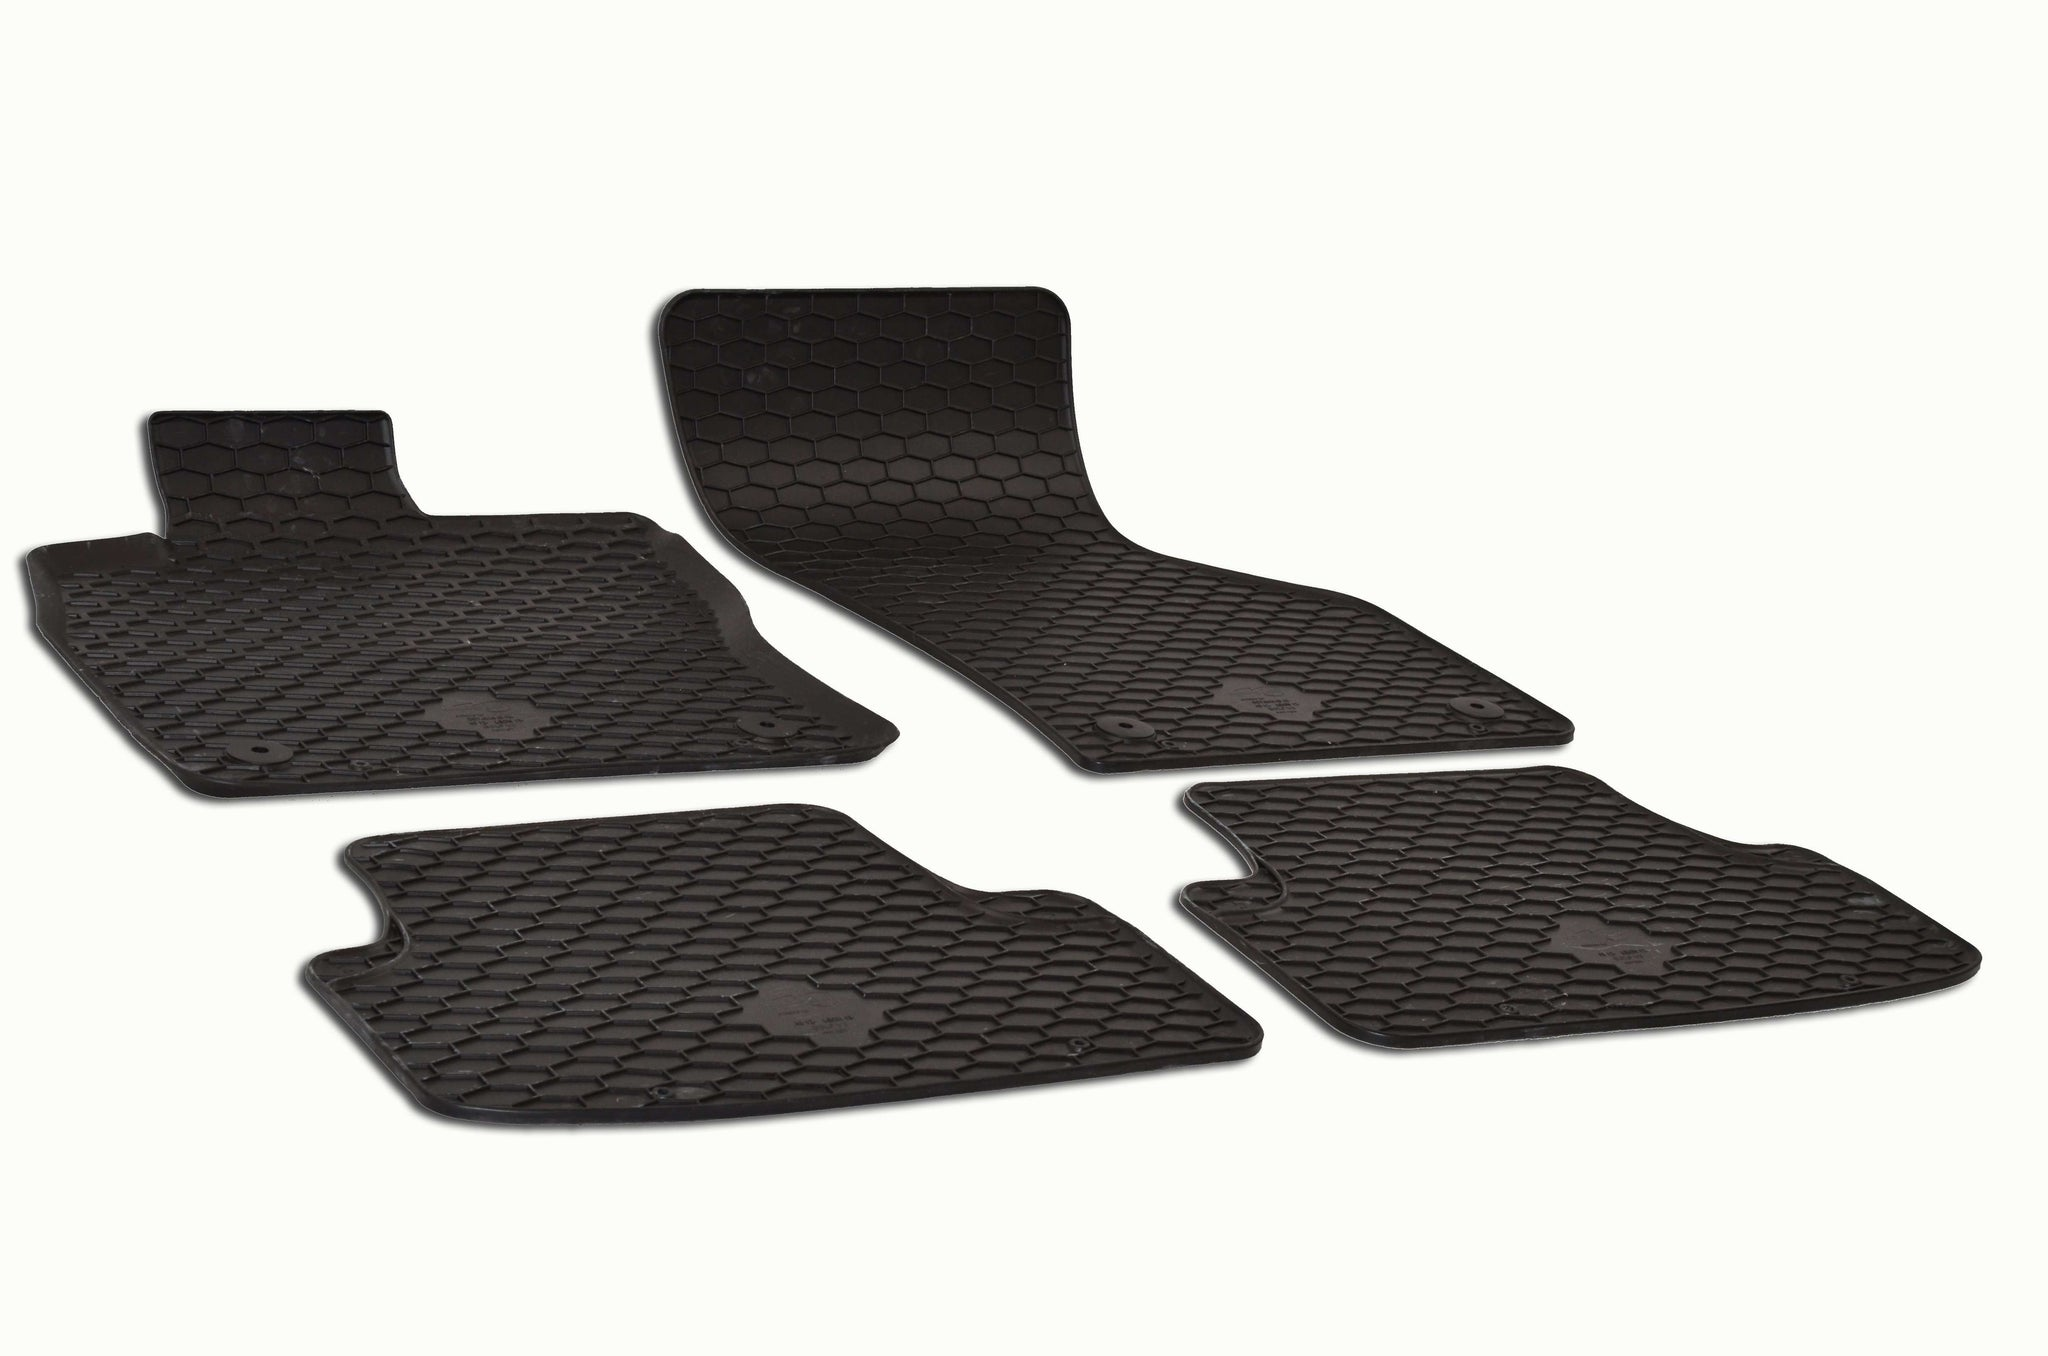 Volkswagen Golf MK7 2015 Set of 4 Black Rubber OE Fit All Weather Car Floor Mats